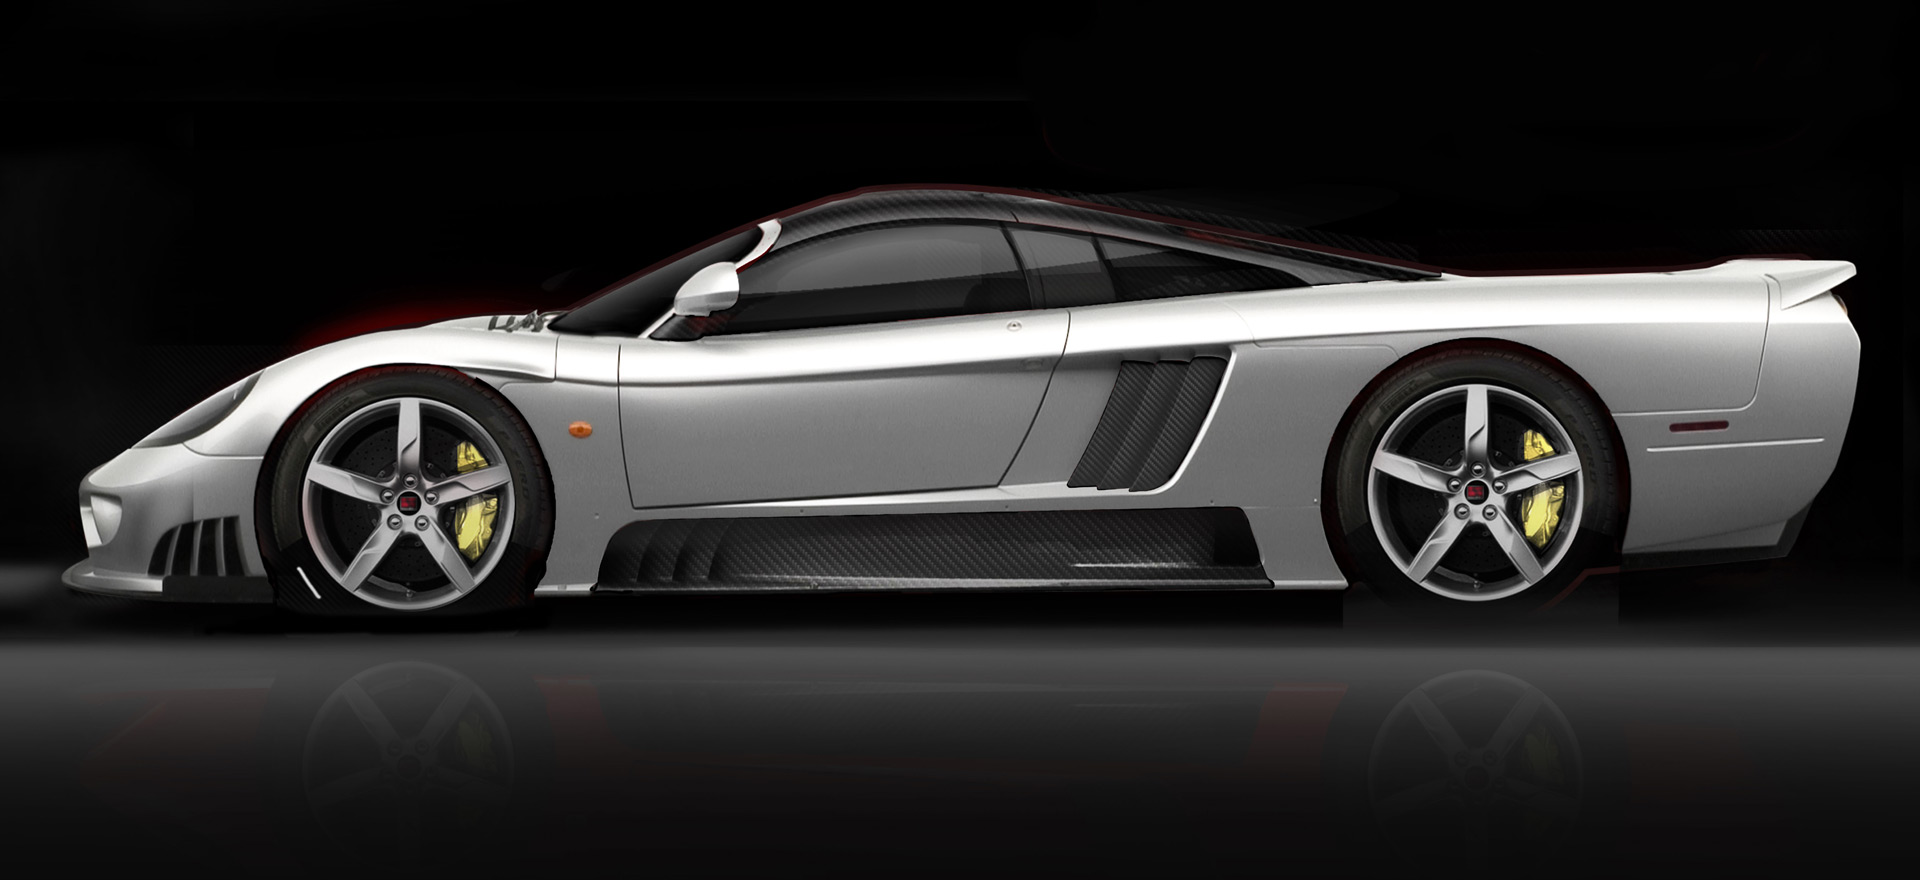 Saleen to build 7 more S7 supercars